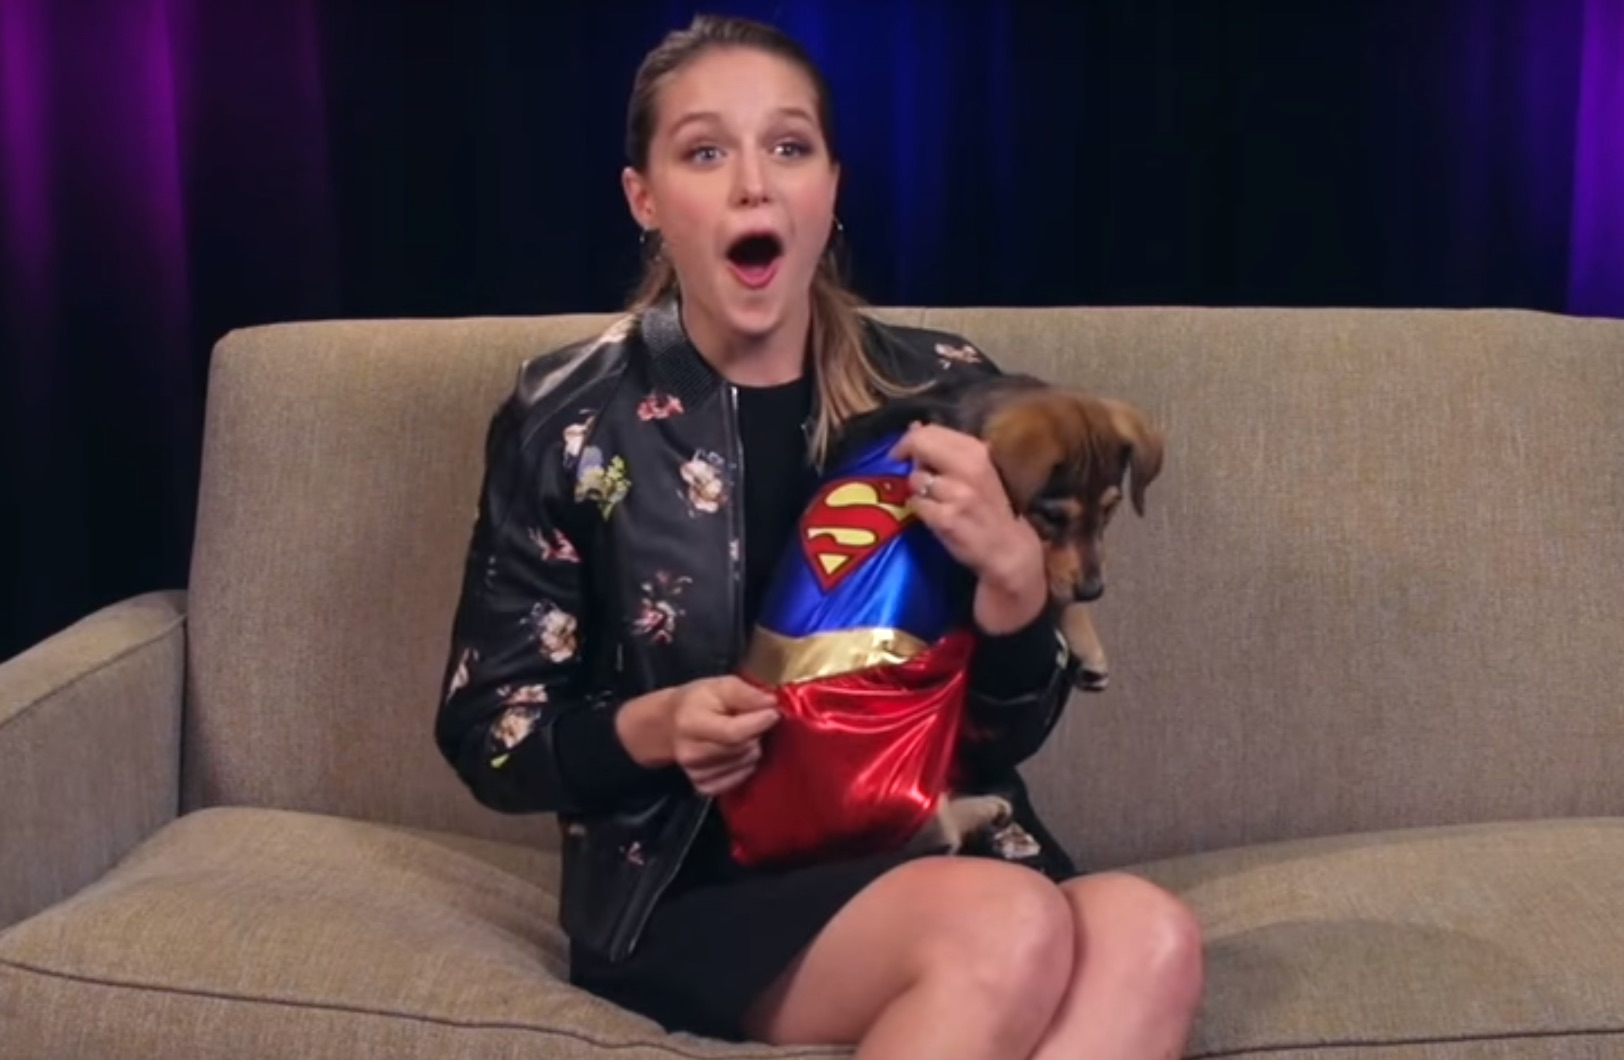 Supergirl's Melissa Benoist tries to answer questions while being swarmed by puppies